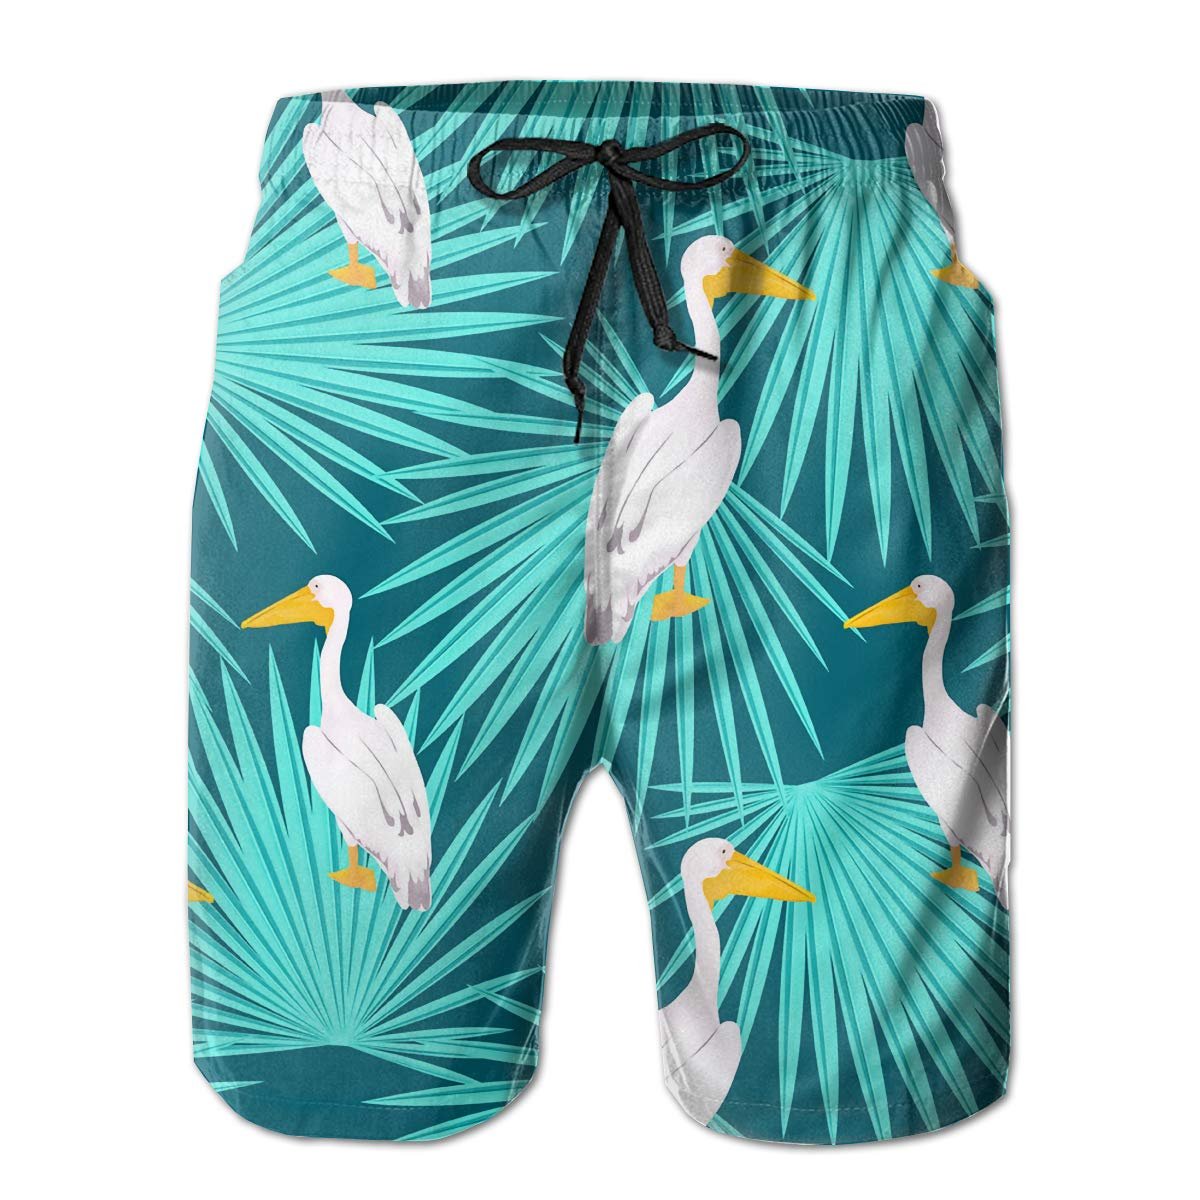 SARA NELL Mens Swim Trunks Hawaii Hawaiian Pink Pelican Palm Tree Tropical Surfing Beach Board Shorts Swimwear